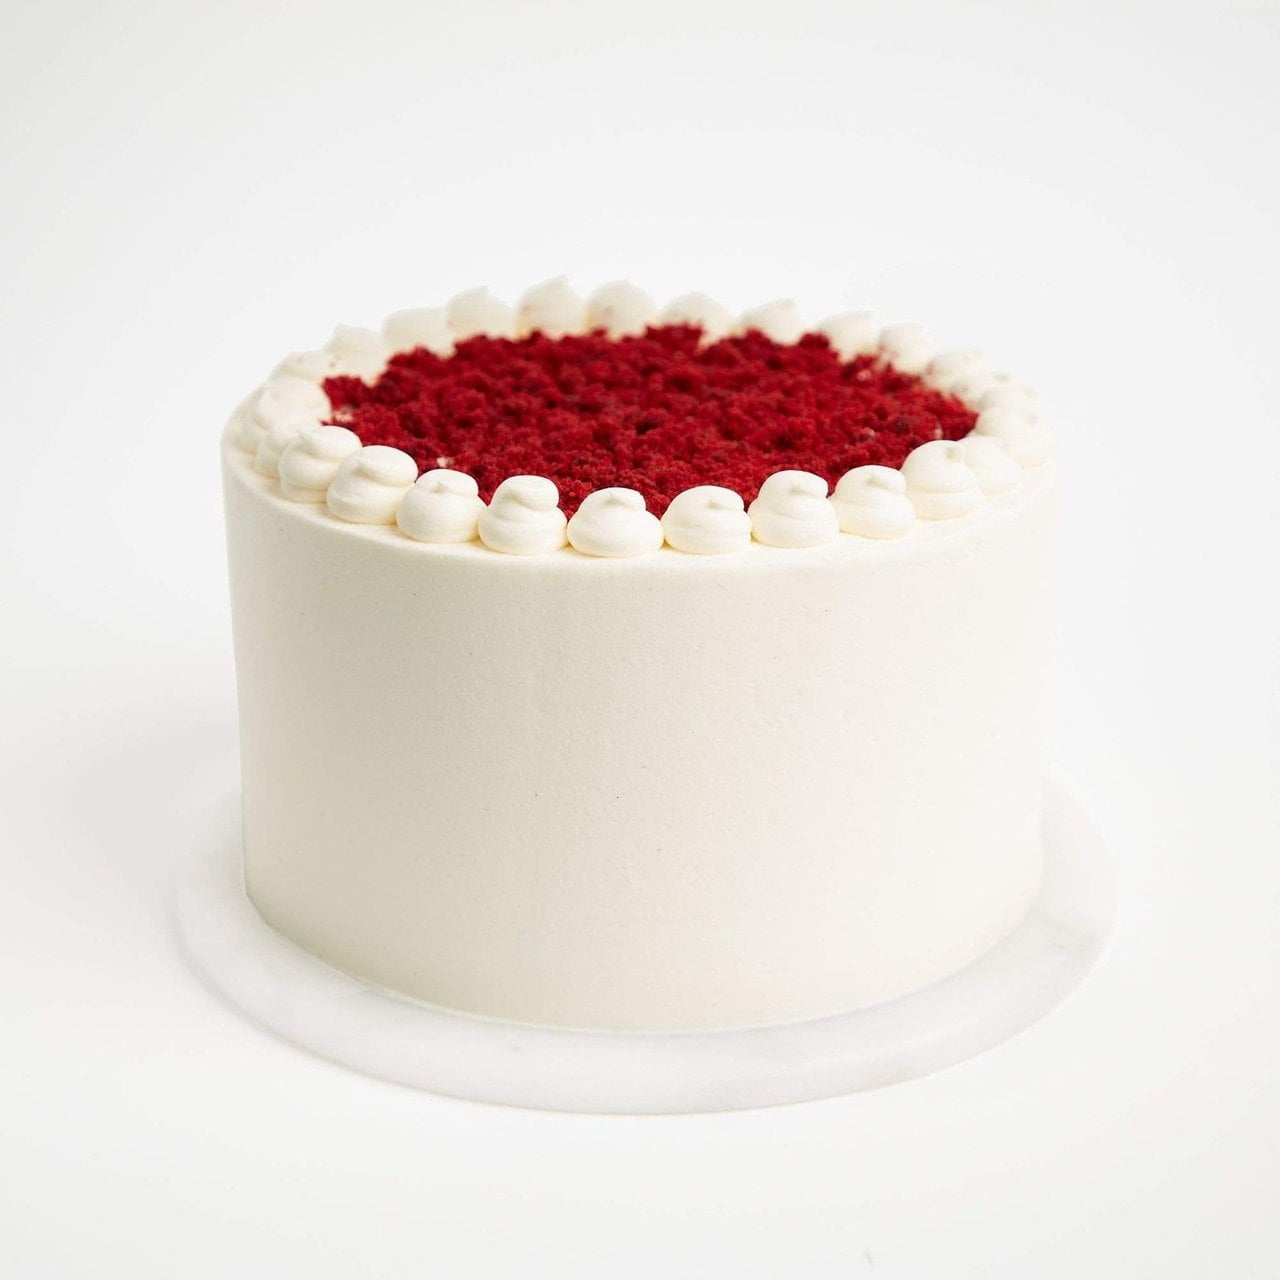 Red Velvet Cake by Crumbs & Doilies